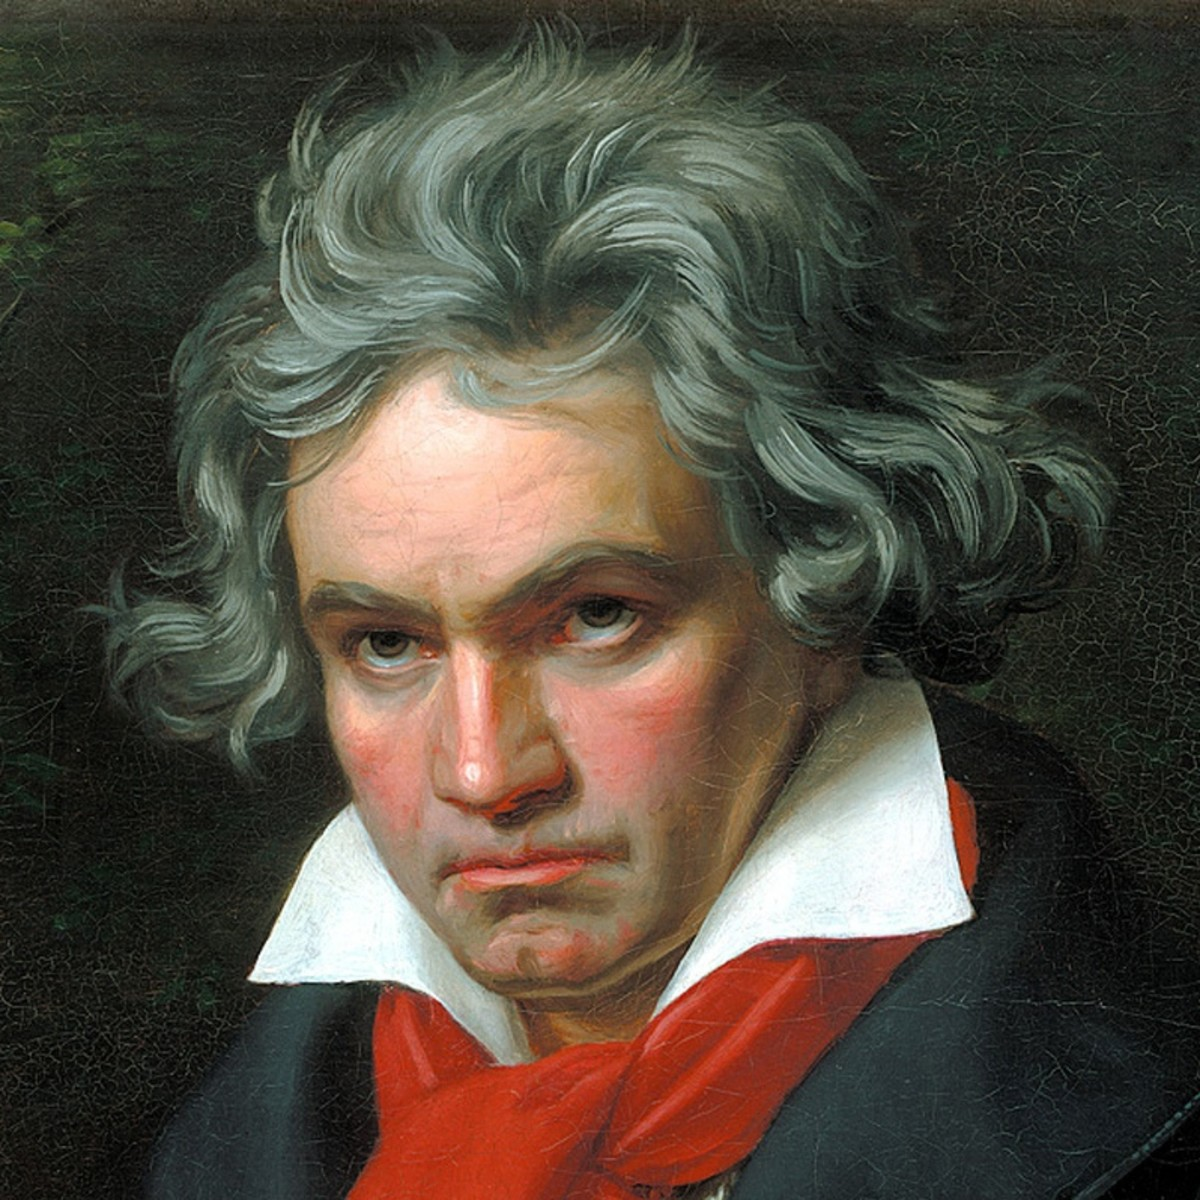 CANCELED: Ludwig van Beethoven: his music and influence